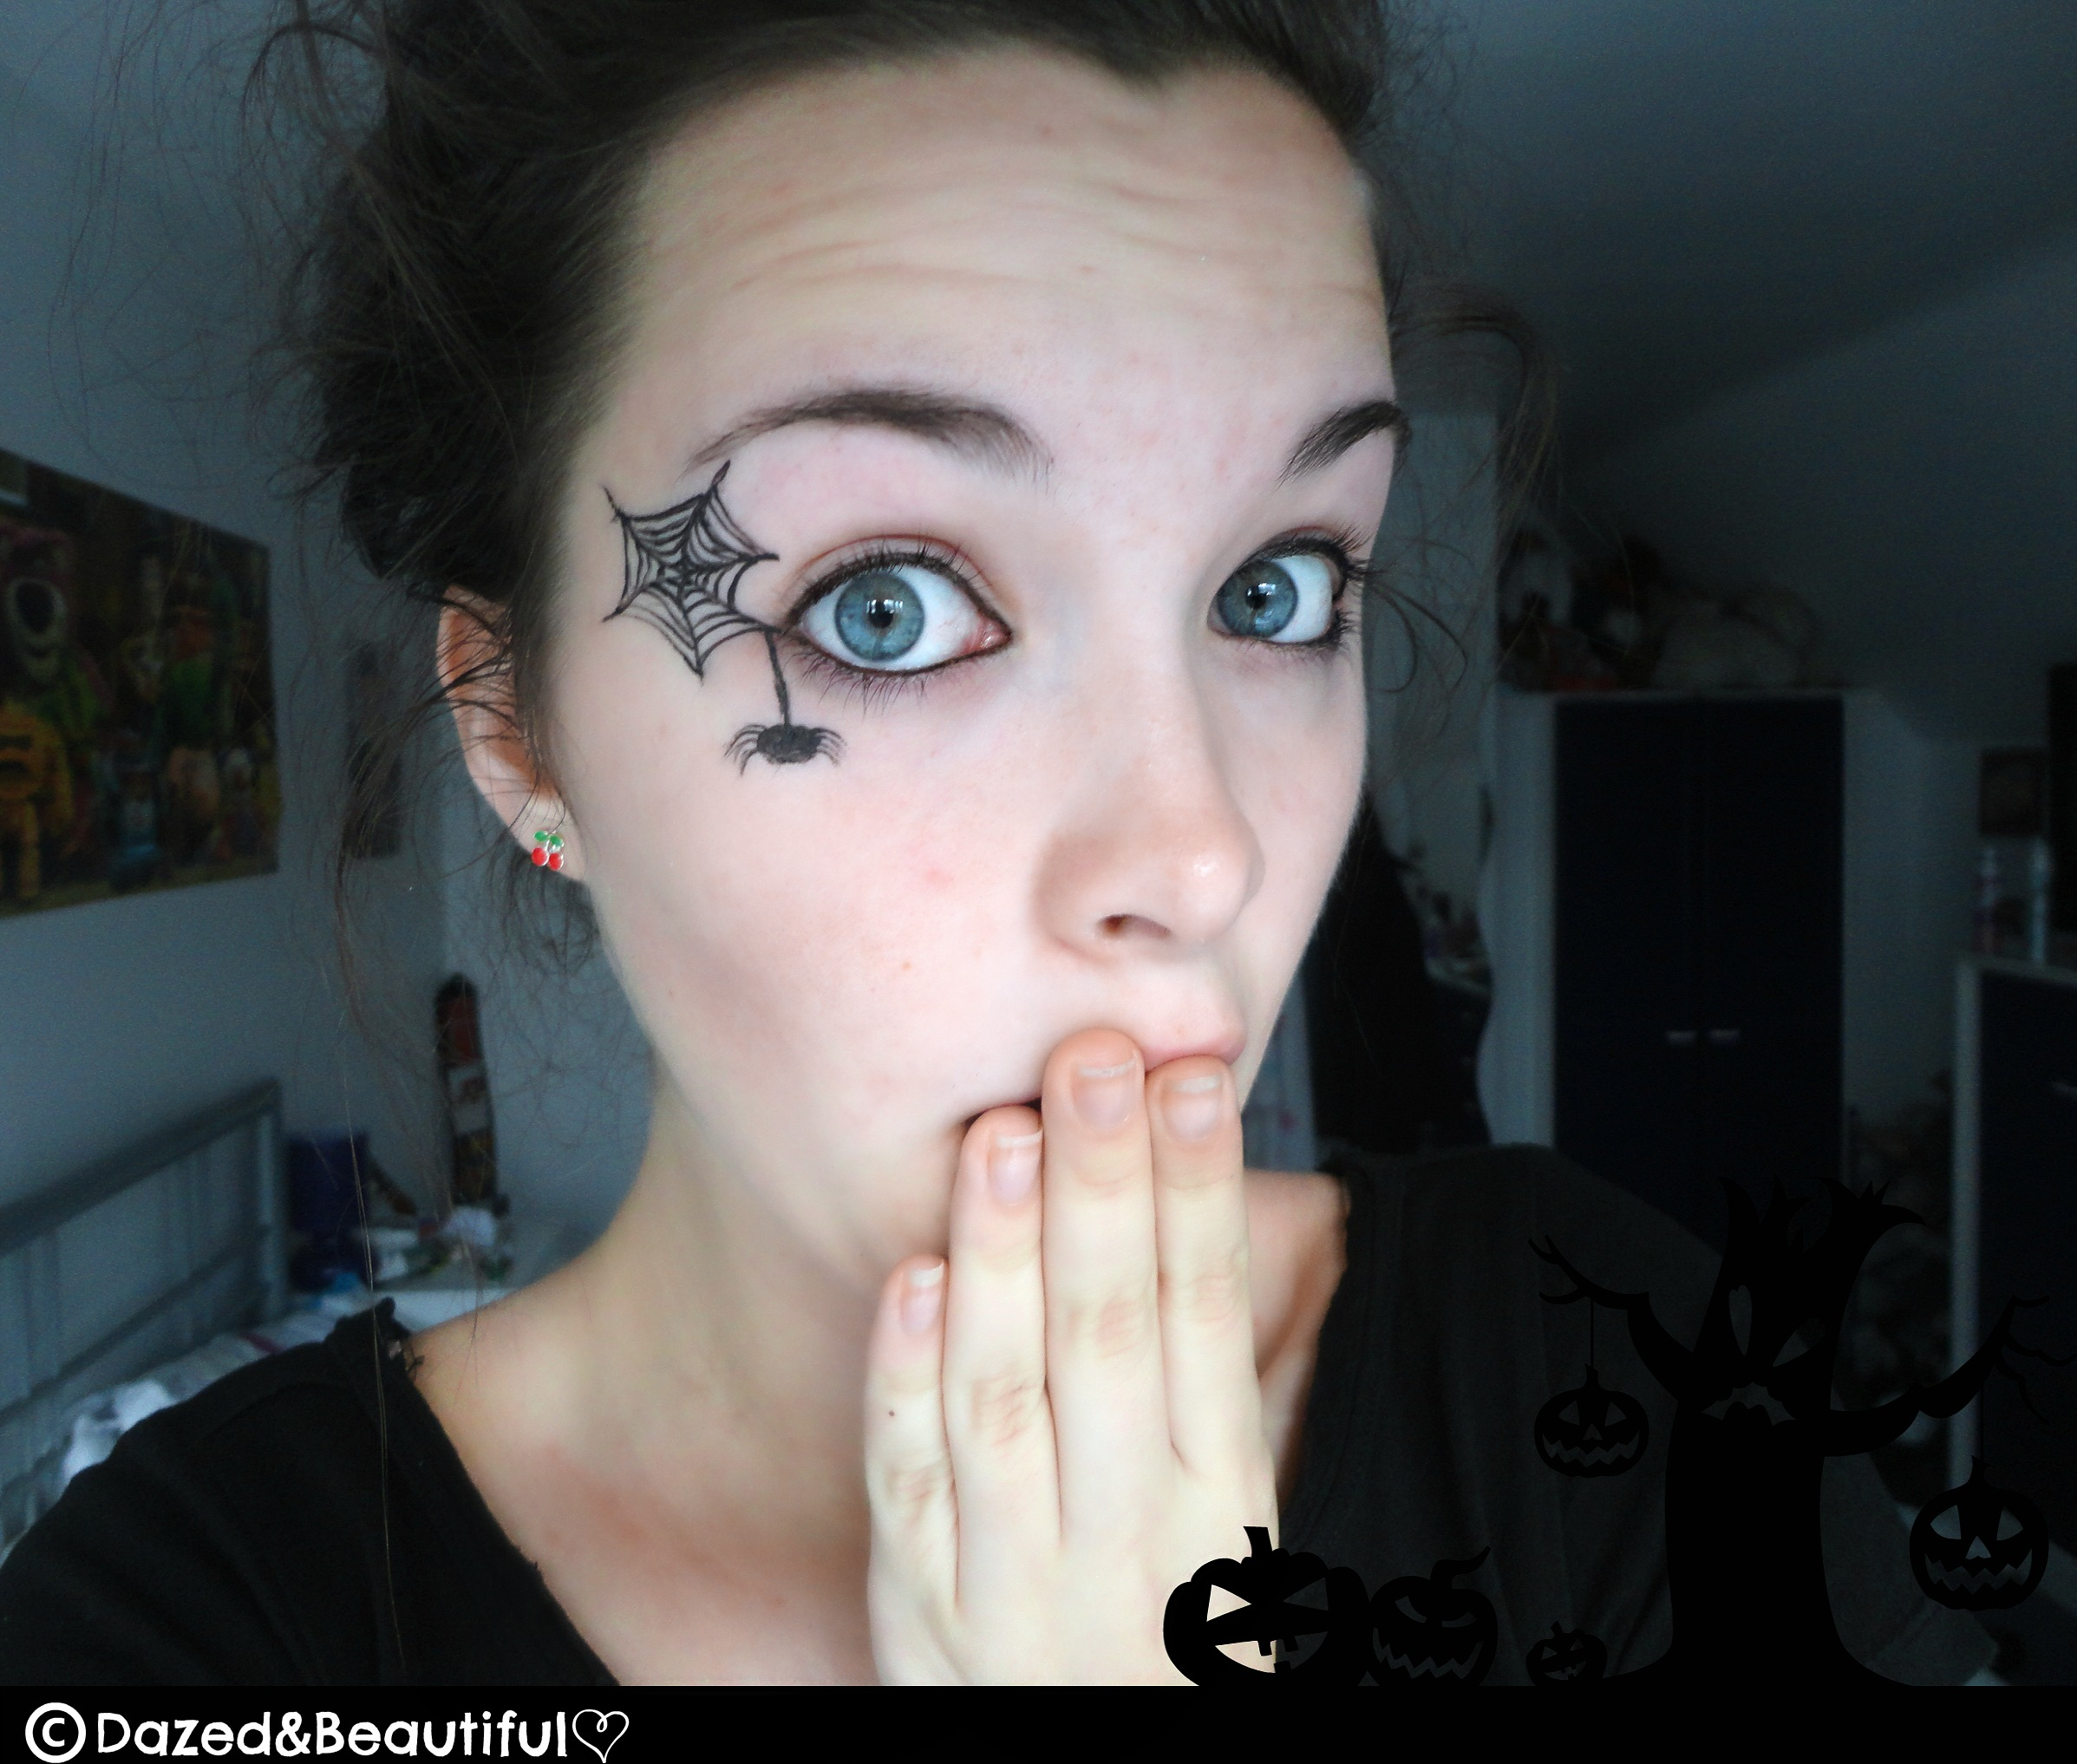 spiderweb Dazed&ampBeautiful - Cute And Easy Halloween Makeup